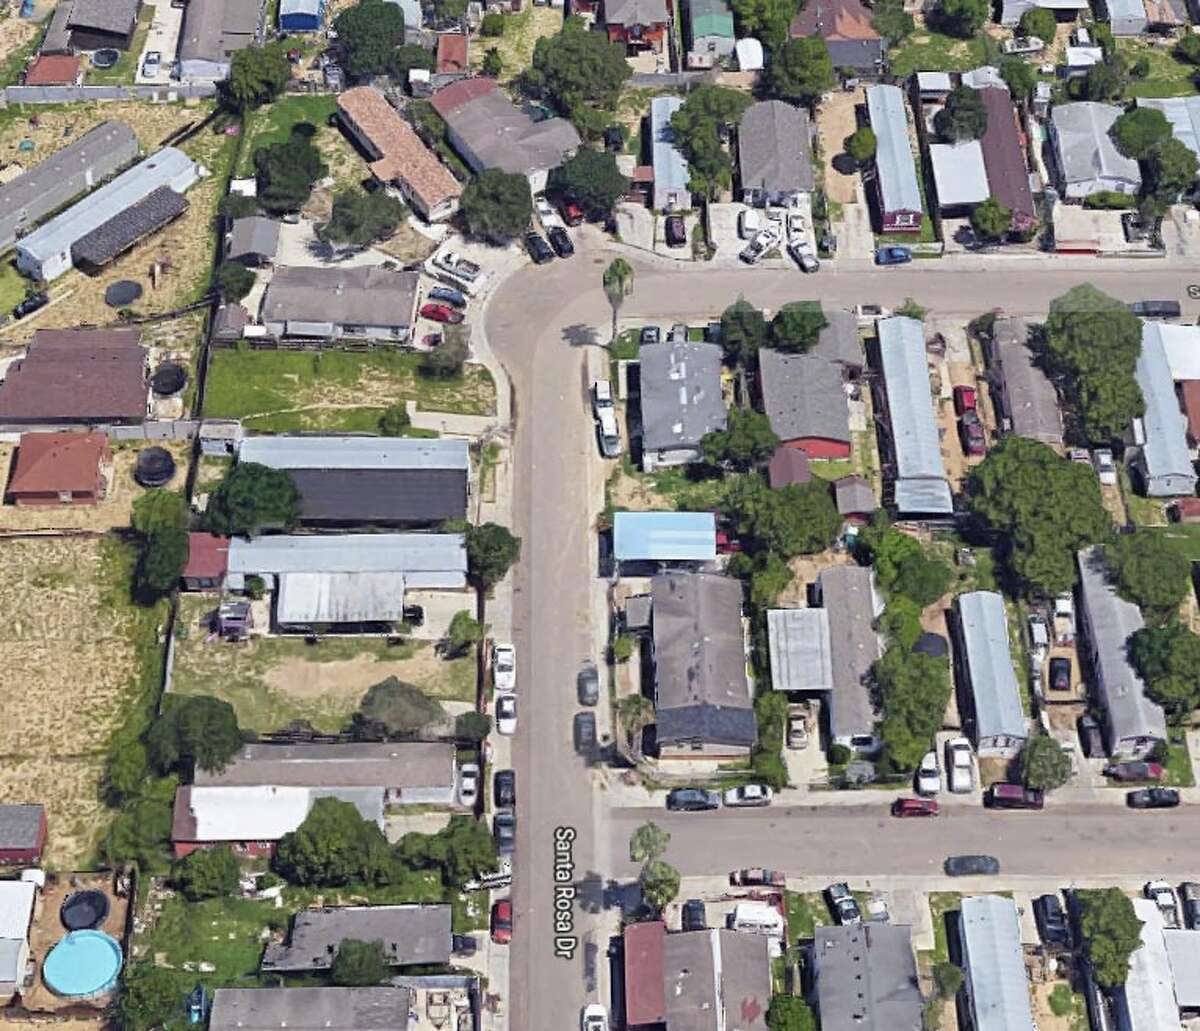 The Laredo Police Department said a drive-by shooting occurred in the 5000 block of Santa Rosa Drive in El Eden neighborhood Sunday morning.